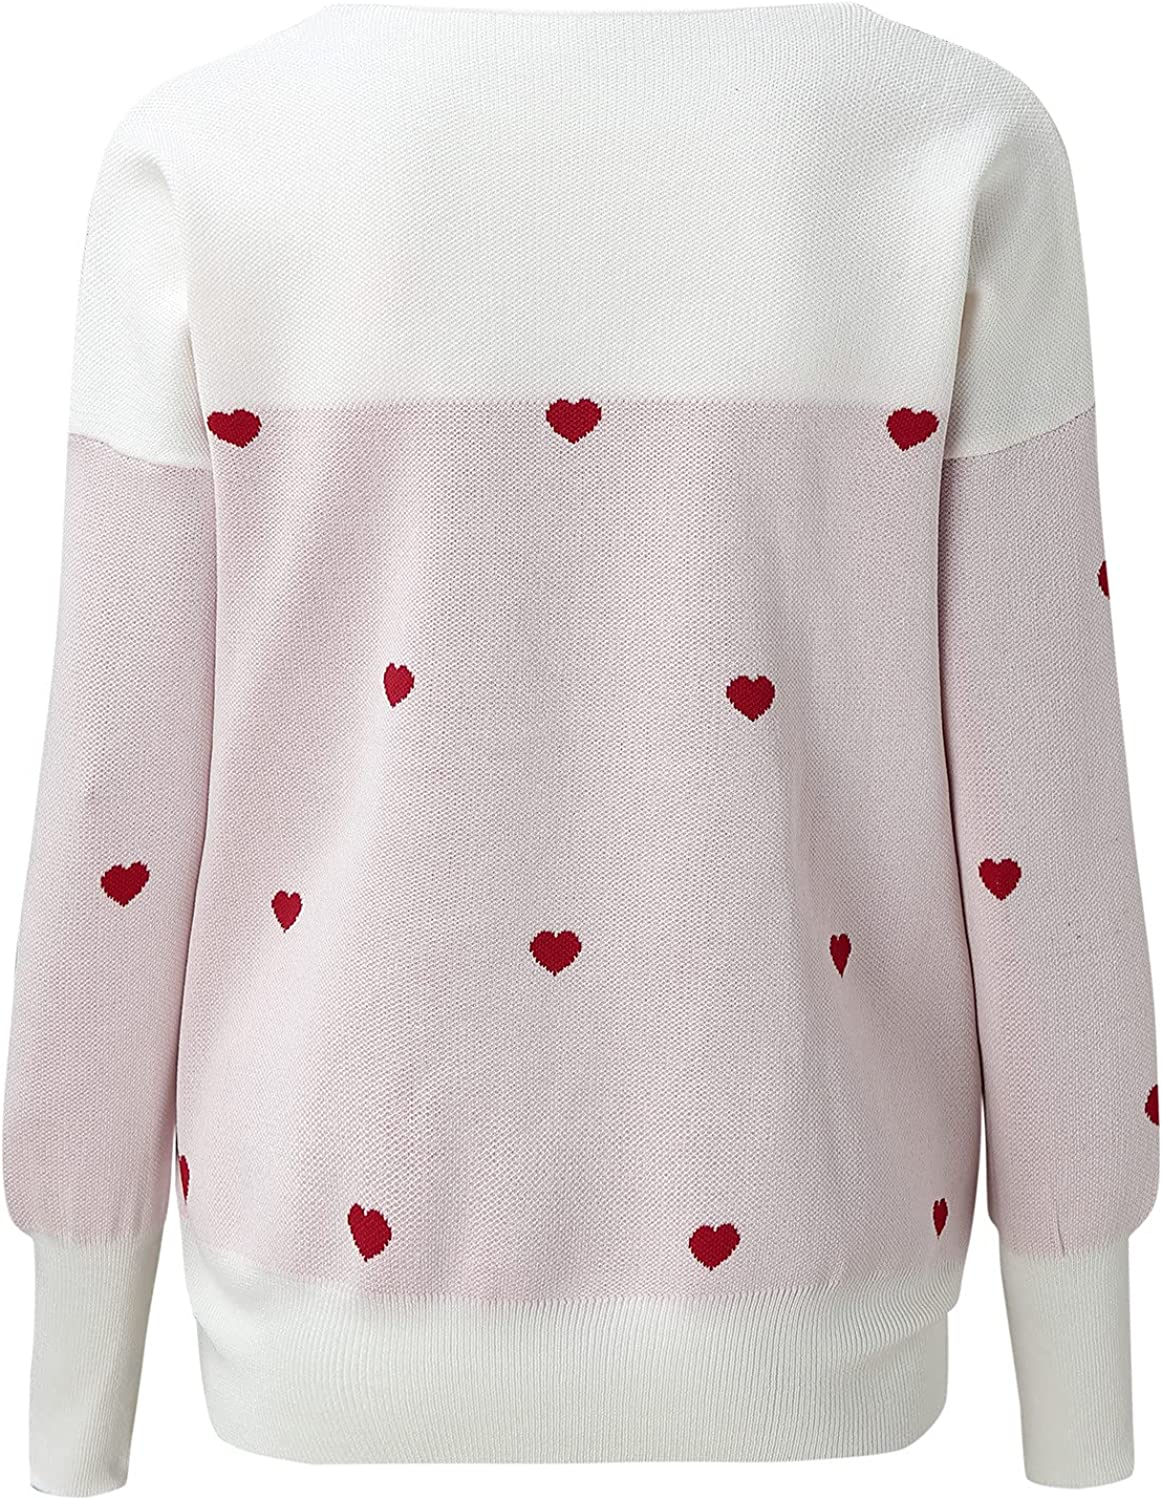 Women's Casual Lightweight V Neck Long Sleeve Knit Top Loose Pullover Sweater Color Block Cute Love Heart Print Sweaters